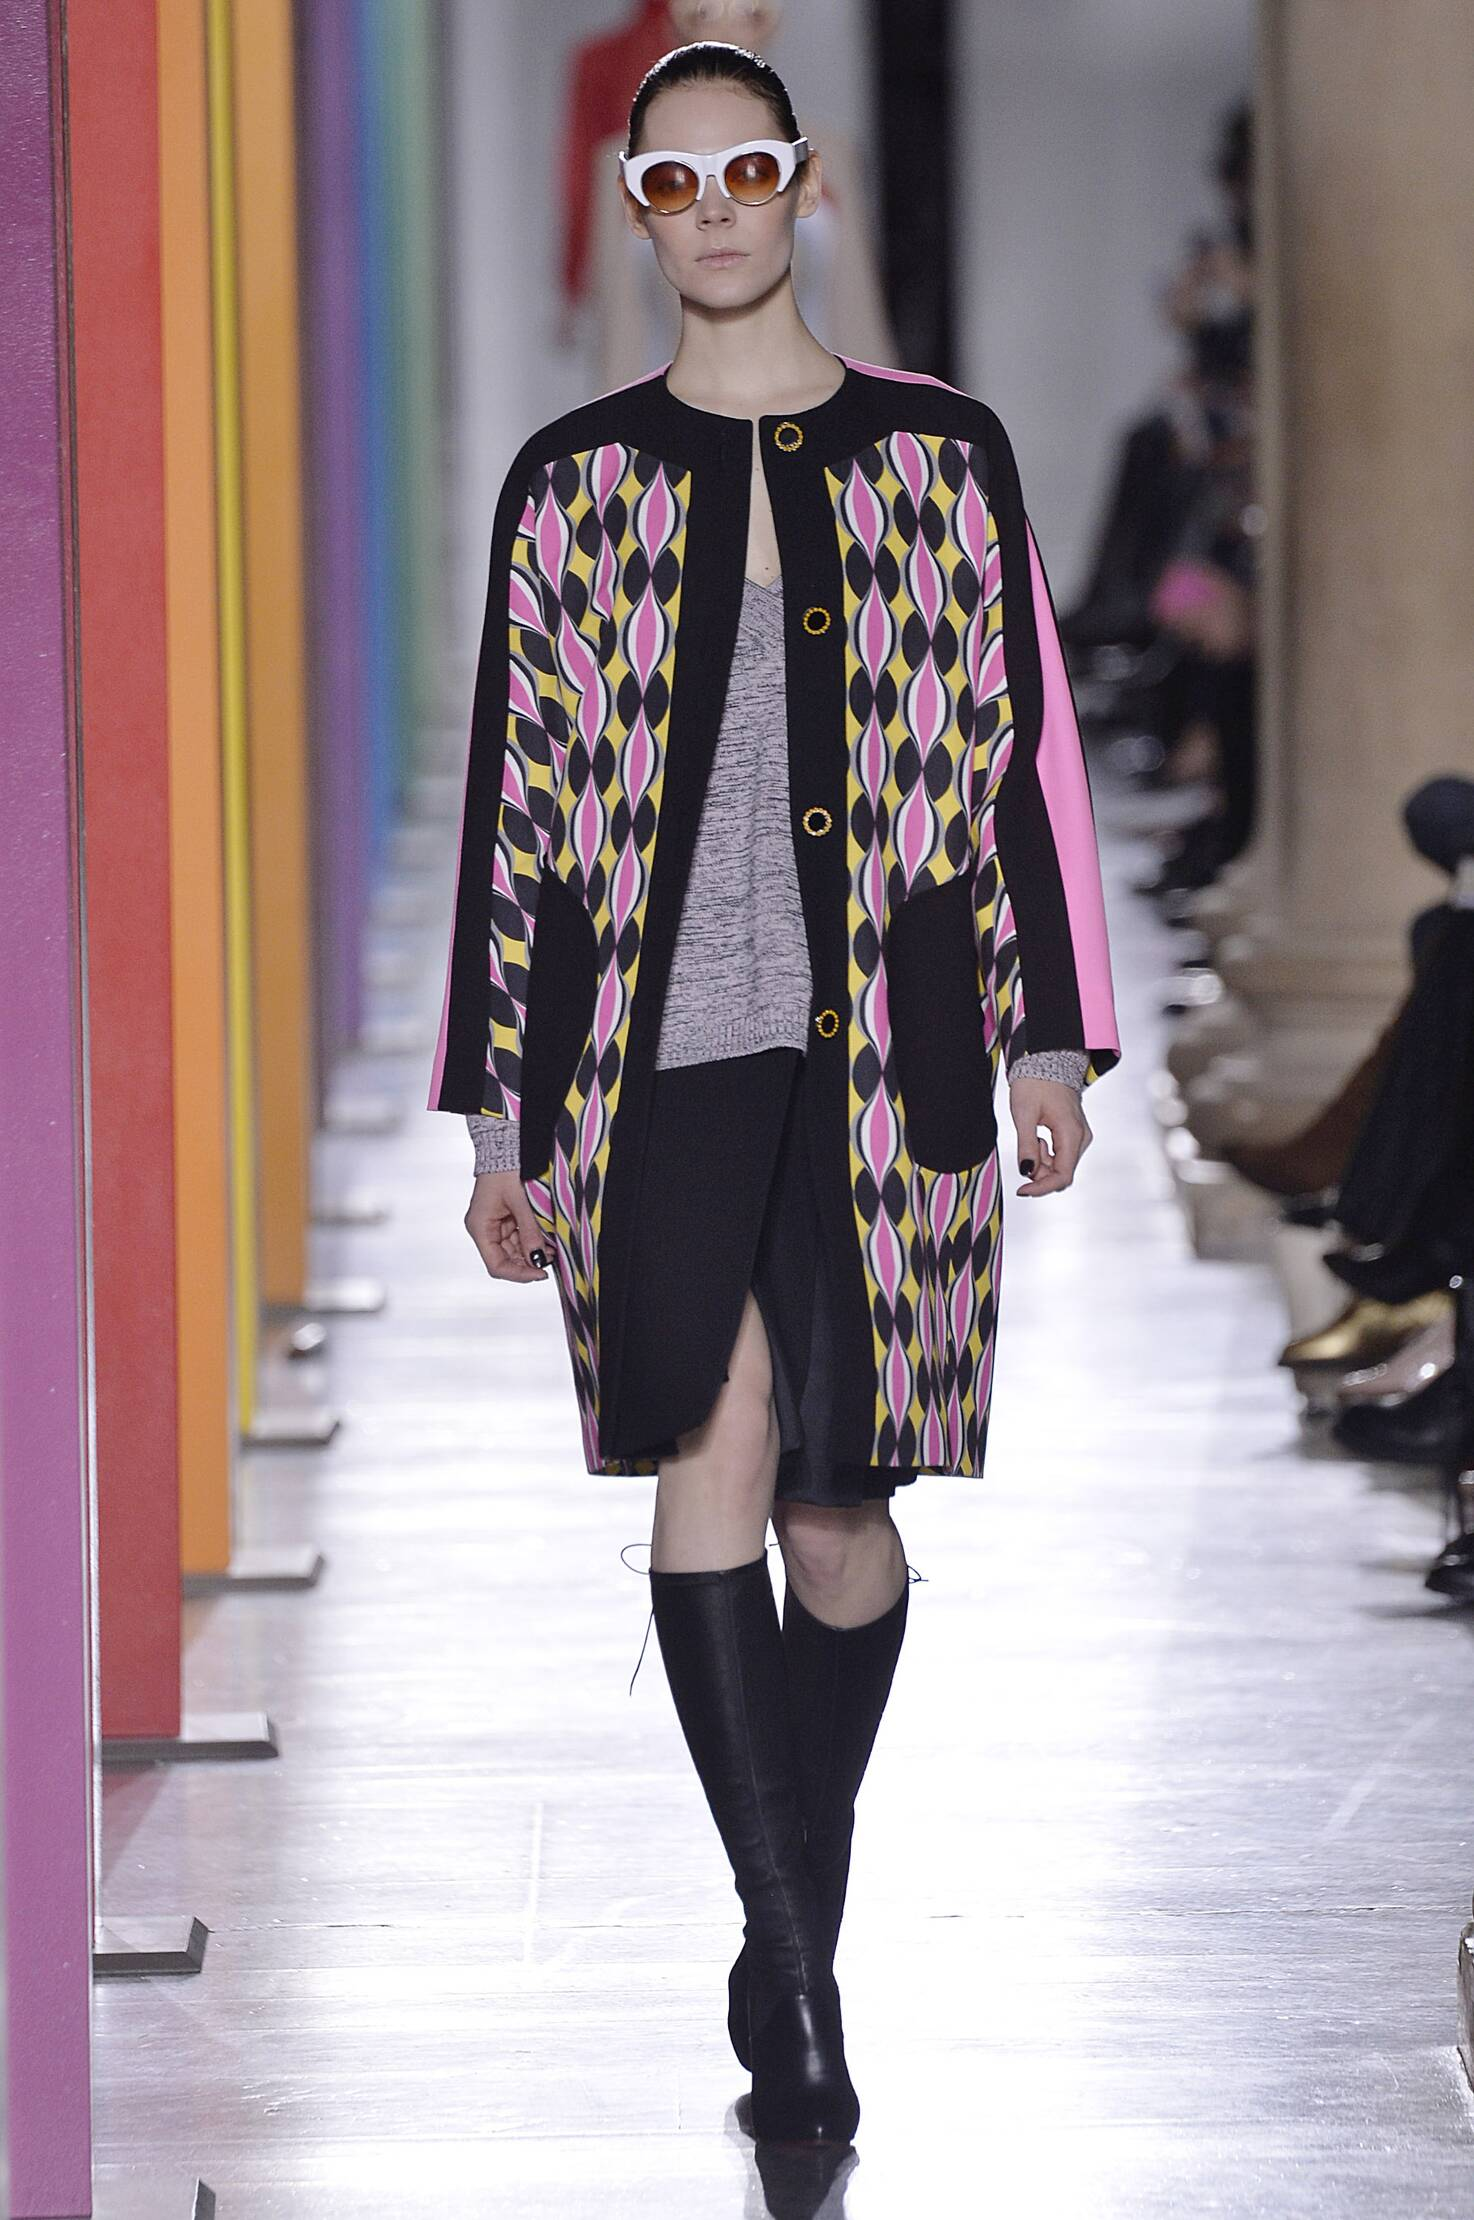 Winter Fashion Trends 2015 2016 Jonathan Saunders Collection